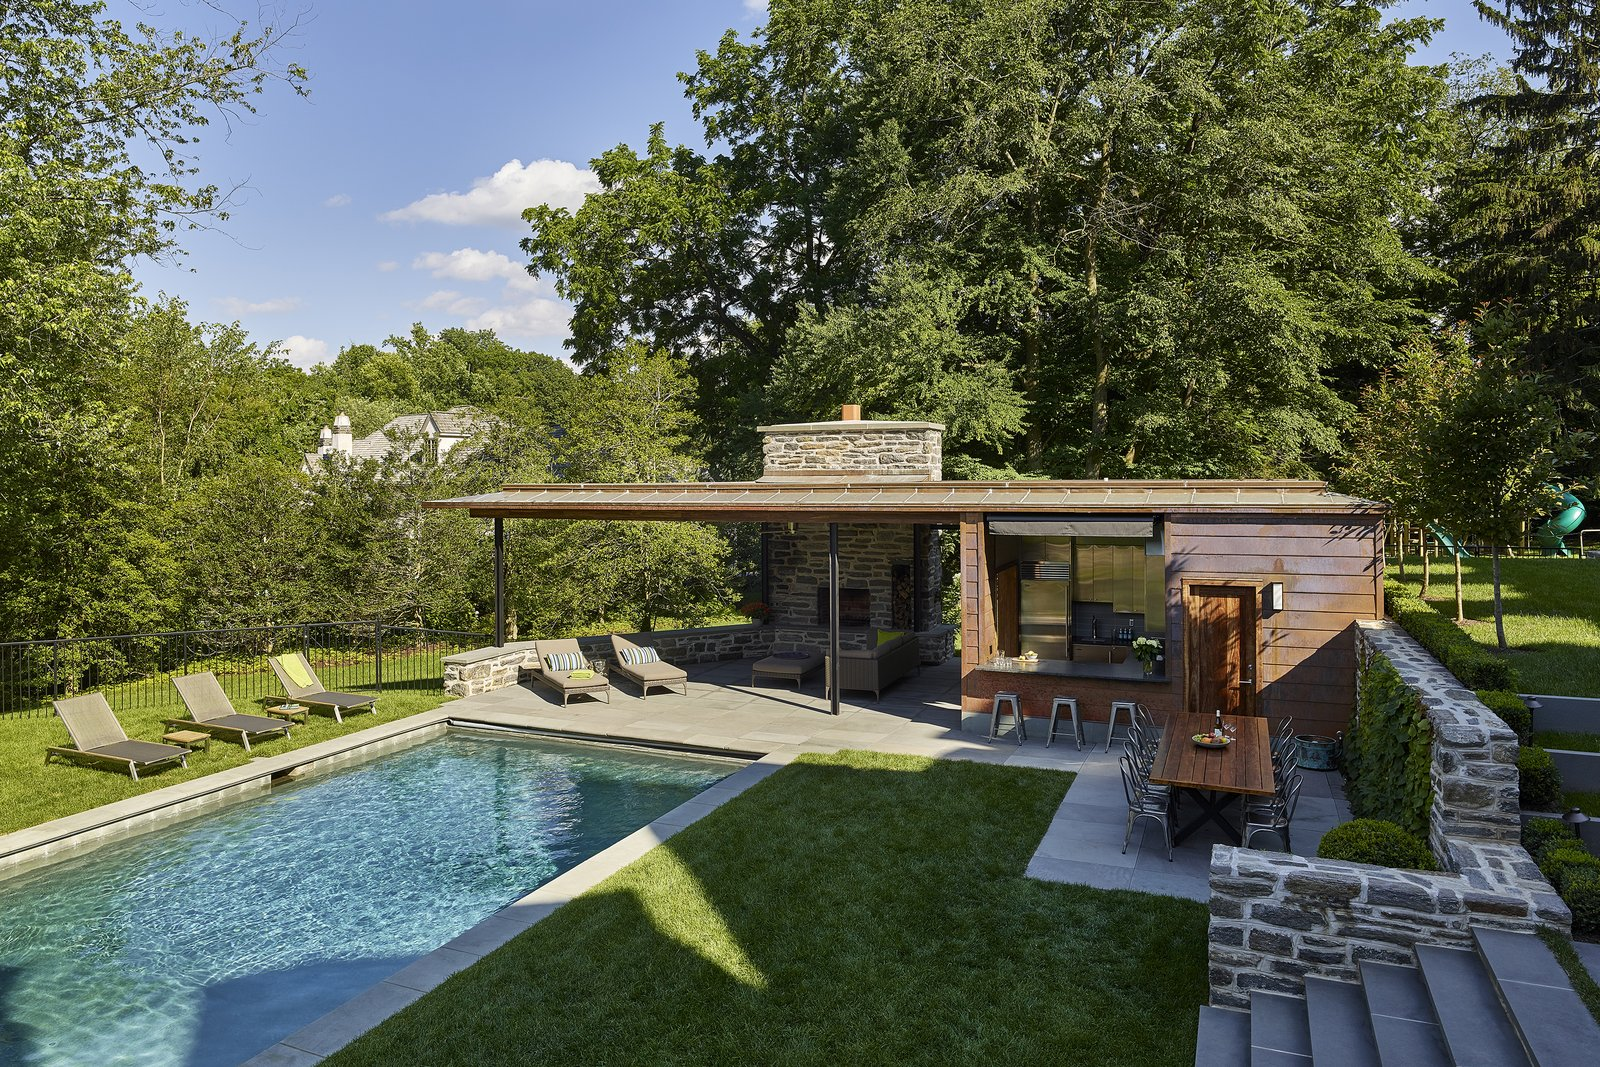 The pool house was designed to negotiate the terraced site. Tagged: Slope, Stone Patio, Porch, Deck, Trees, Hardscapes, Walkways, Outdoor, Large Pools, Tubs, Shower, Back Yard, Swimming Pools, Tubs, Shower, Standard Construction Pools, Tubs, Shower, and Vertical Fences, Wall.  Modern Pool House for Sloped Site by Wyant Architecture